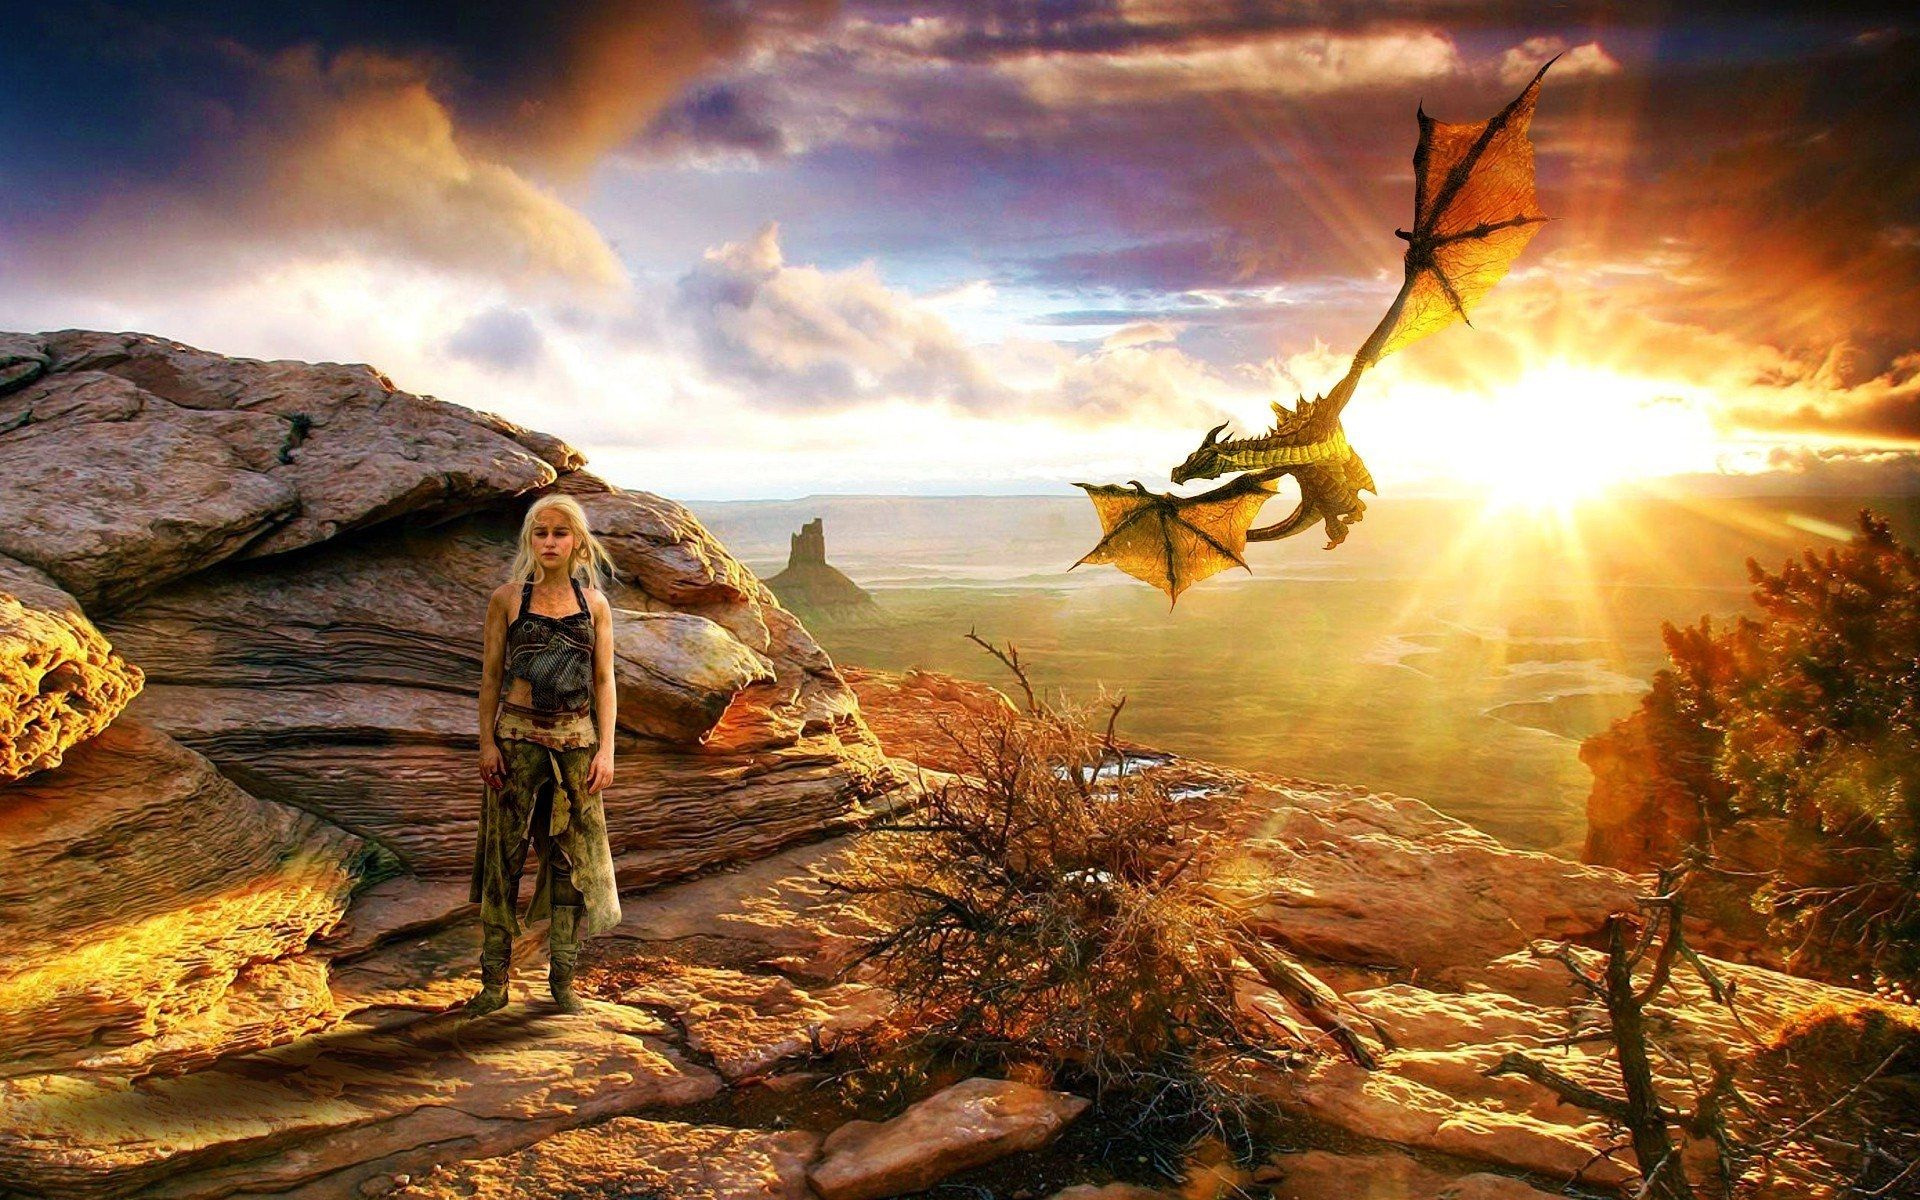 Game of Thrones Daenerys and dragon wallpaper